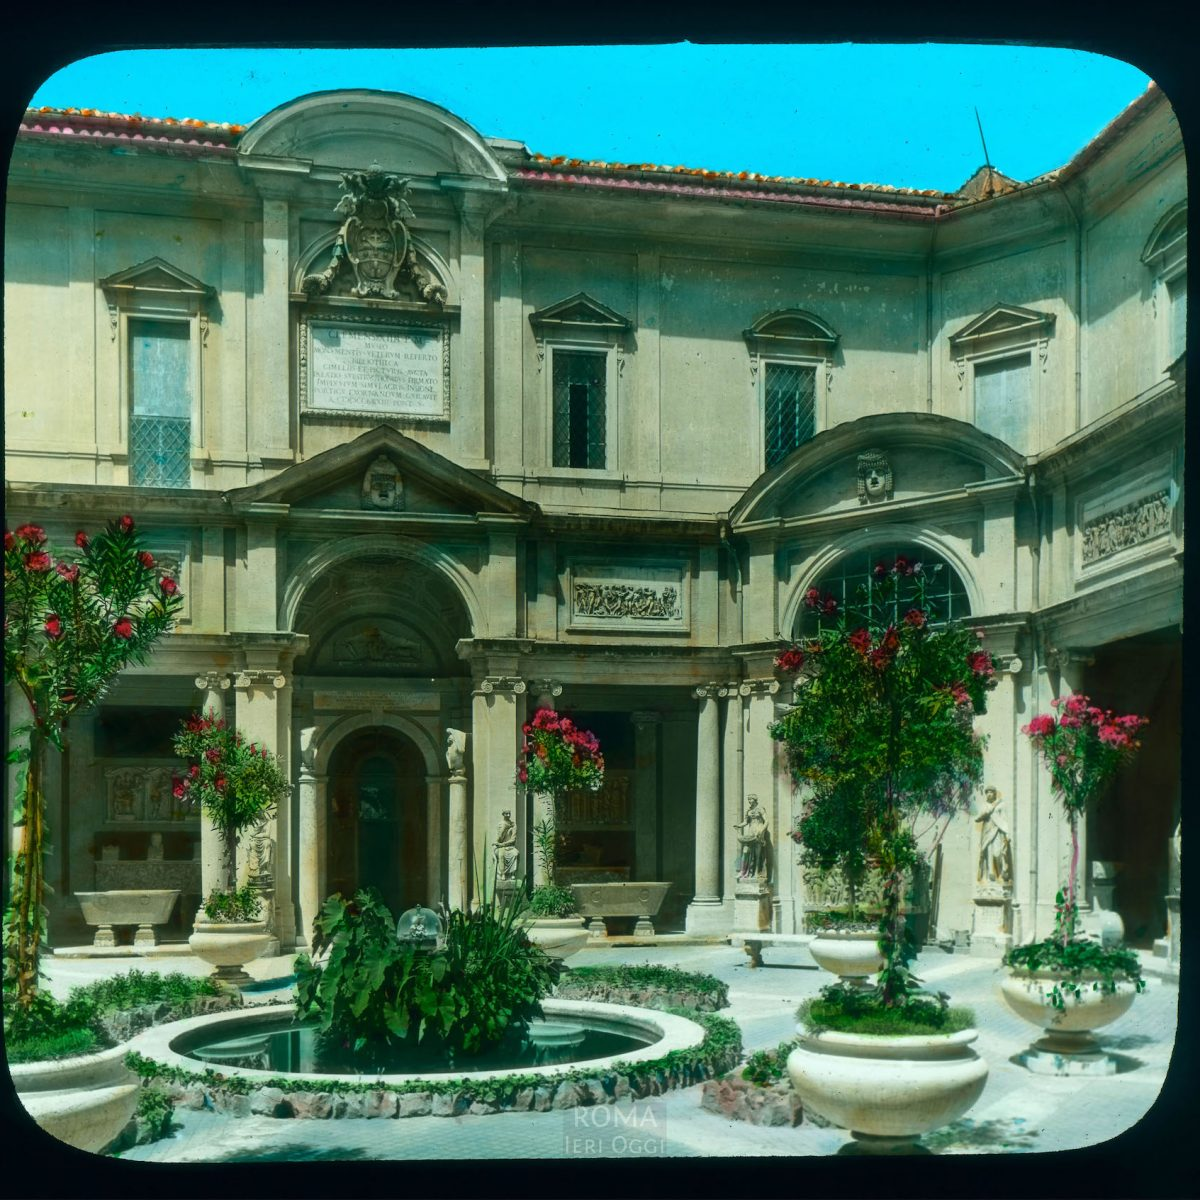 Vatican City. Vatican Museums: view of the Cortile Ottagono View in tinted lantern slide, ca. 1919-1938. The building dates from 1771-1773.